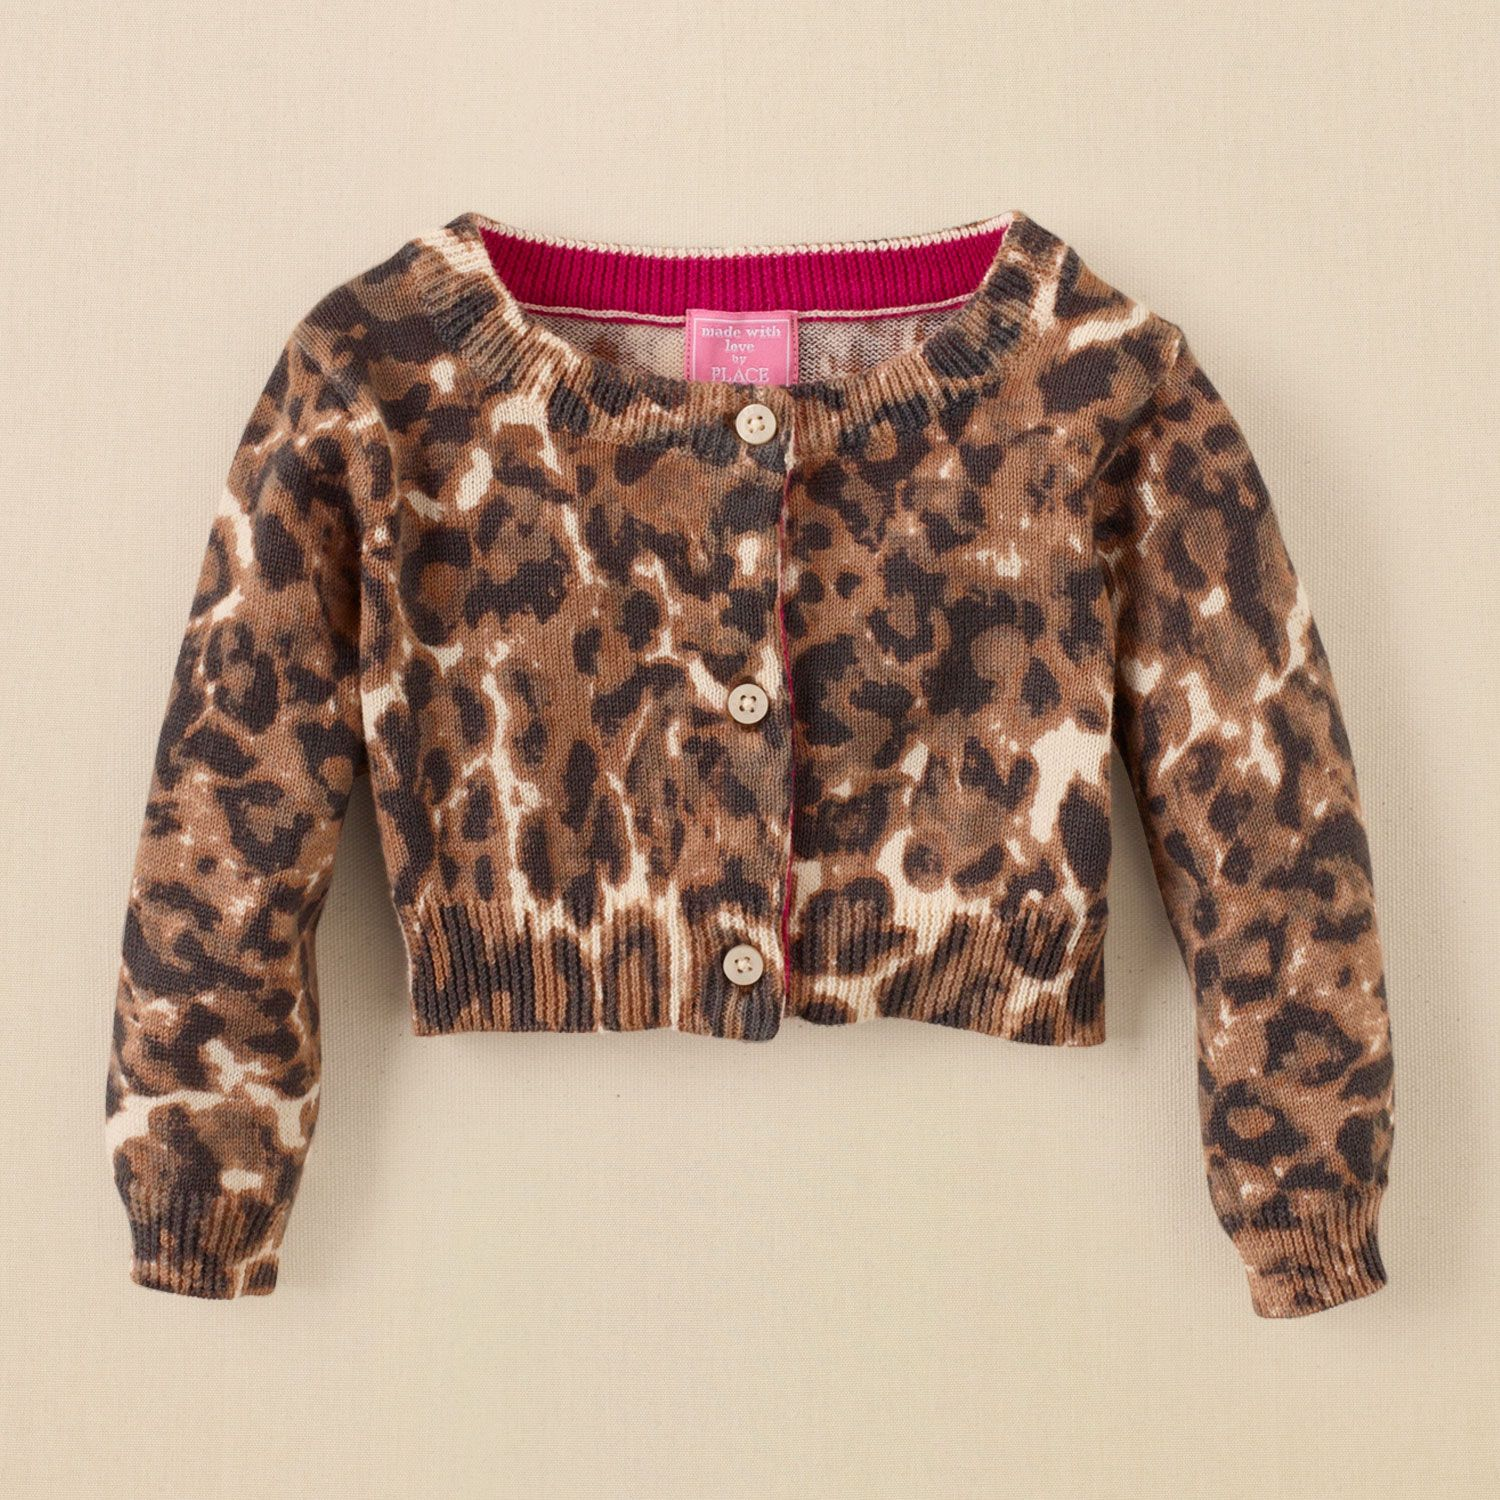 newborn - leopard cardigan | Children's Clothing | Kids Clothes ...